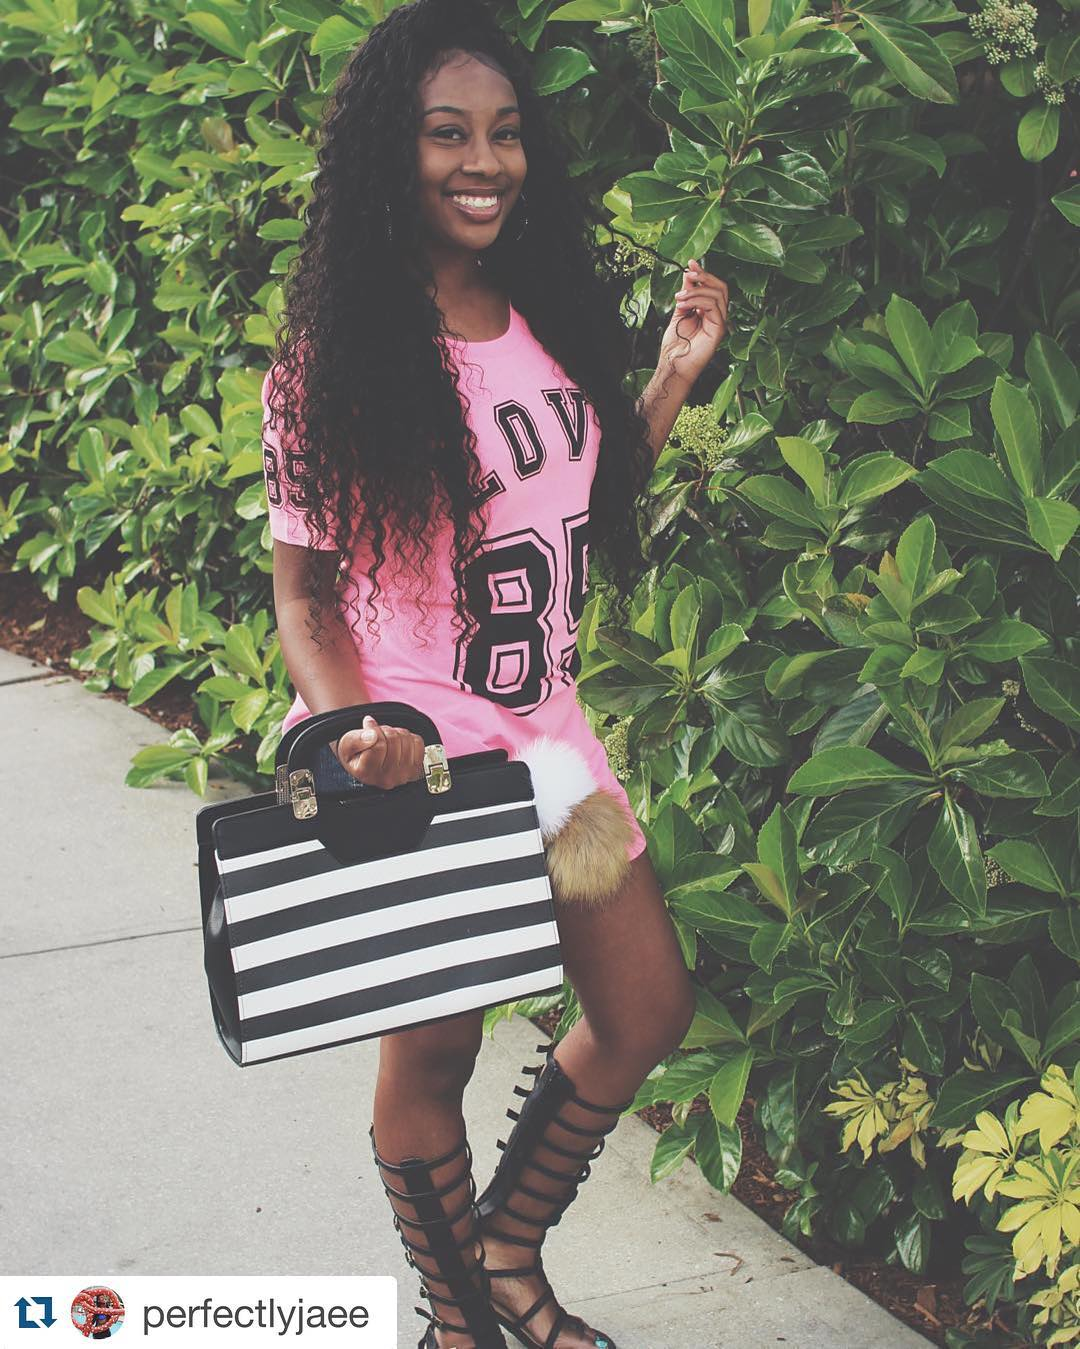 SPOTTED: PerfectlyJaee wearing Deep Wave Extensions